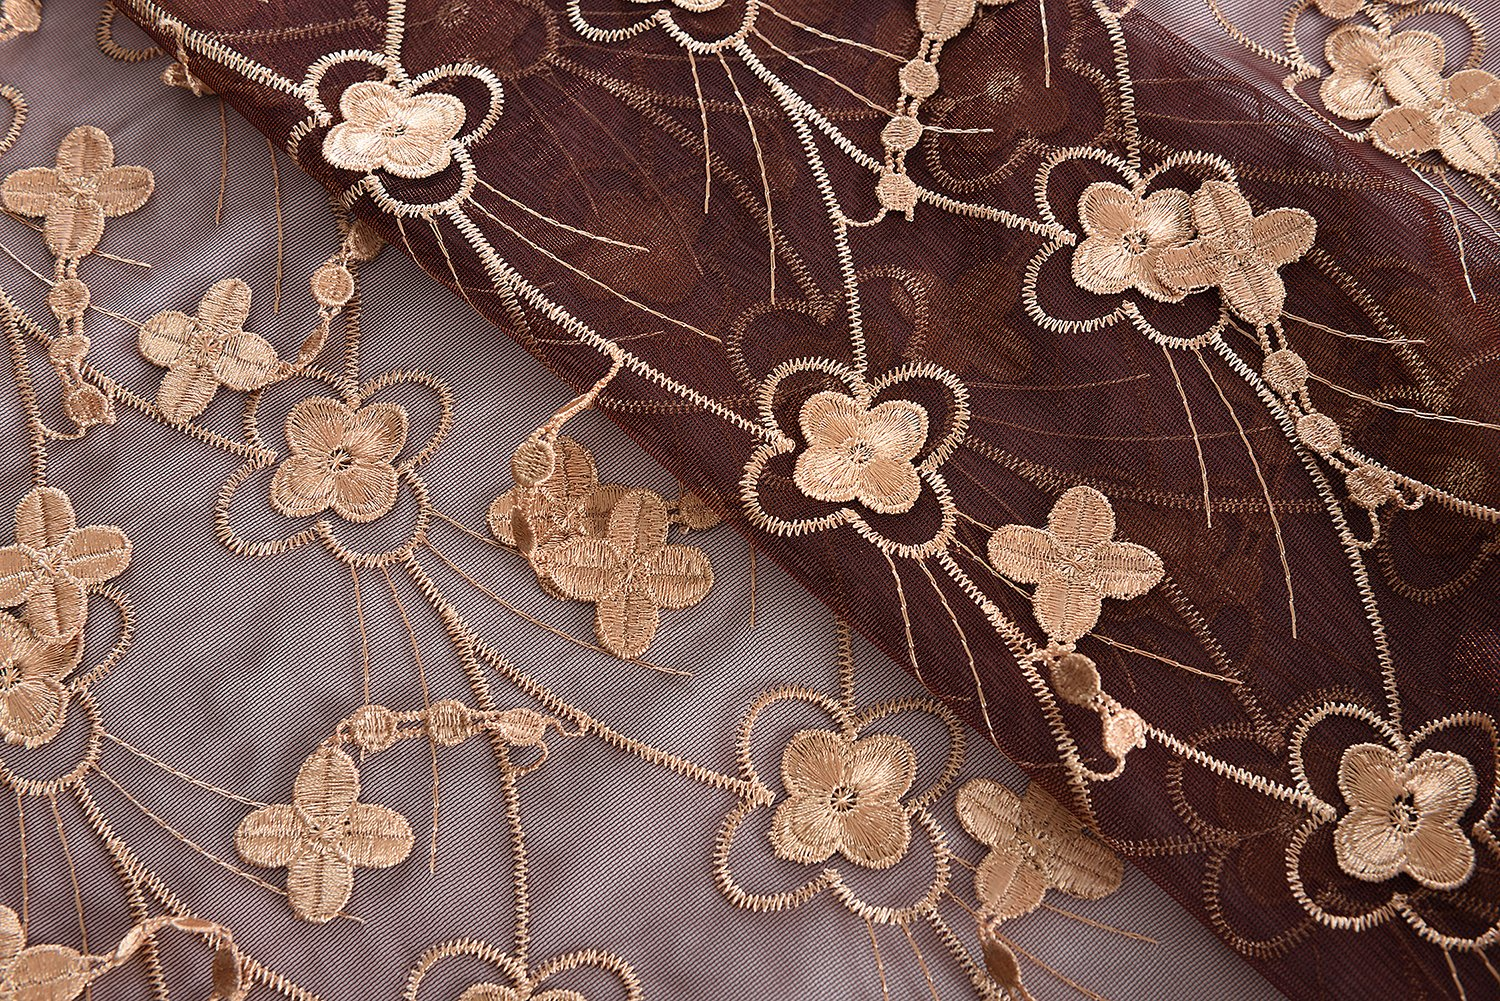 Aside Bside 4 Petals Floral Embroidered Sheer Curtains with Draping Embroidery Decorations Rod Pocket Top Brilliant Design (1 Panel, W 52 x L 104 inch, Red 6) -1281638521048506C1PGC by Aside Bside (Image #6)